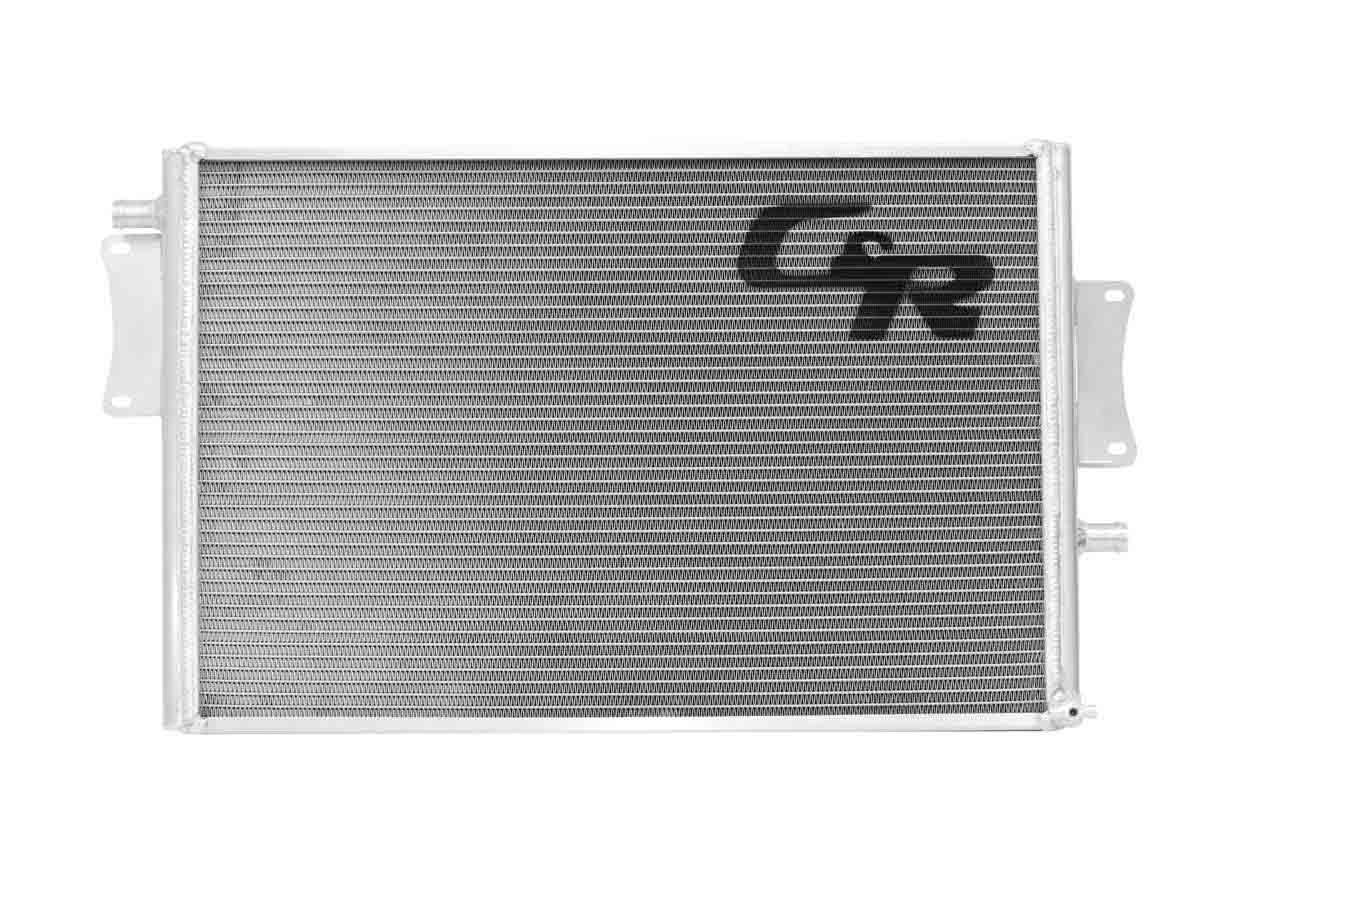 C & R Racing Radiators 56-00011 Heat Exchanger, Intercooler, 42 mm Core, Aluminum, Natural, Manual Transmission, ZL1, Chevy Camaro 2013-15, Each